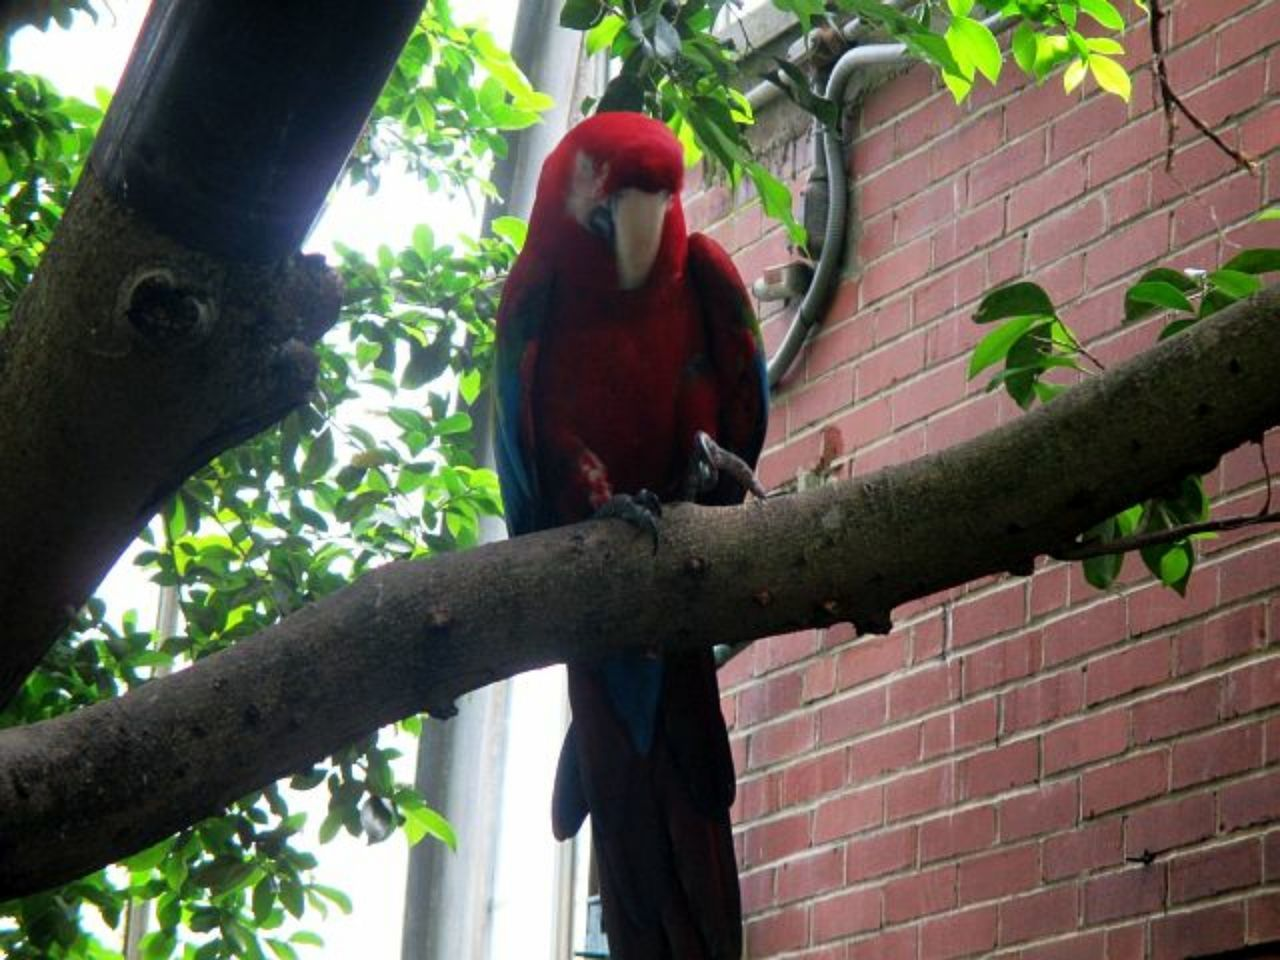 animals in the wild, animal wildlife, animal themes, low angle view, perching, bird, tree, day, no people, outdoors, red, branch, nature, parrot, beauty in nature